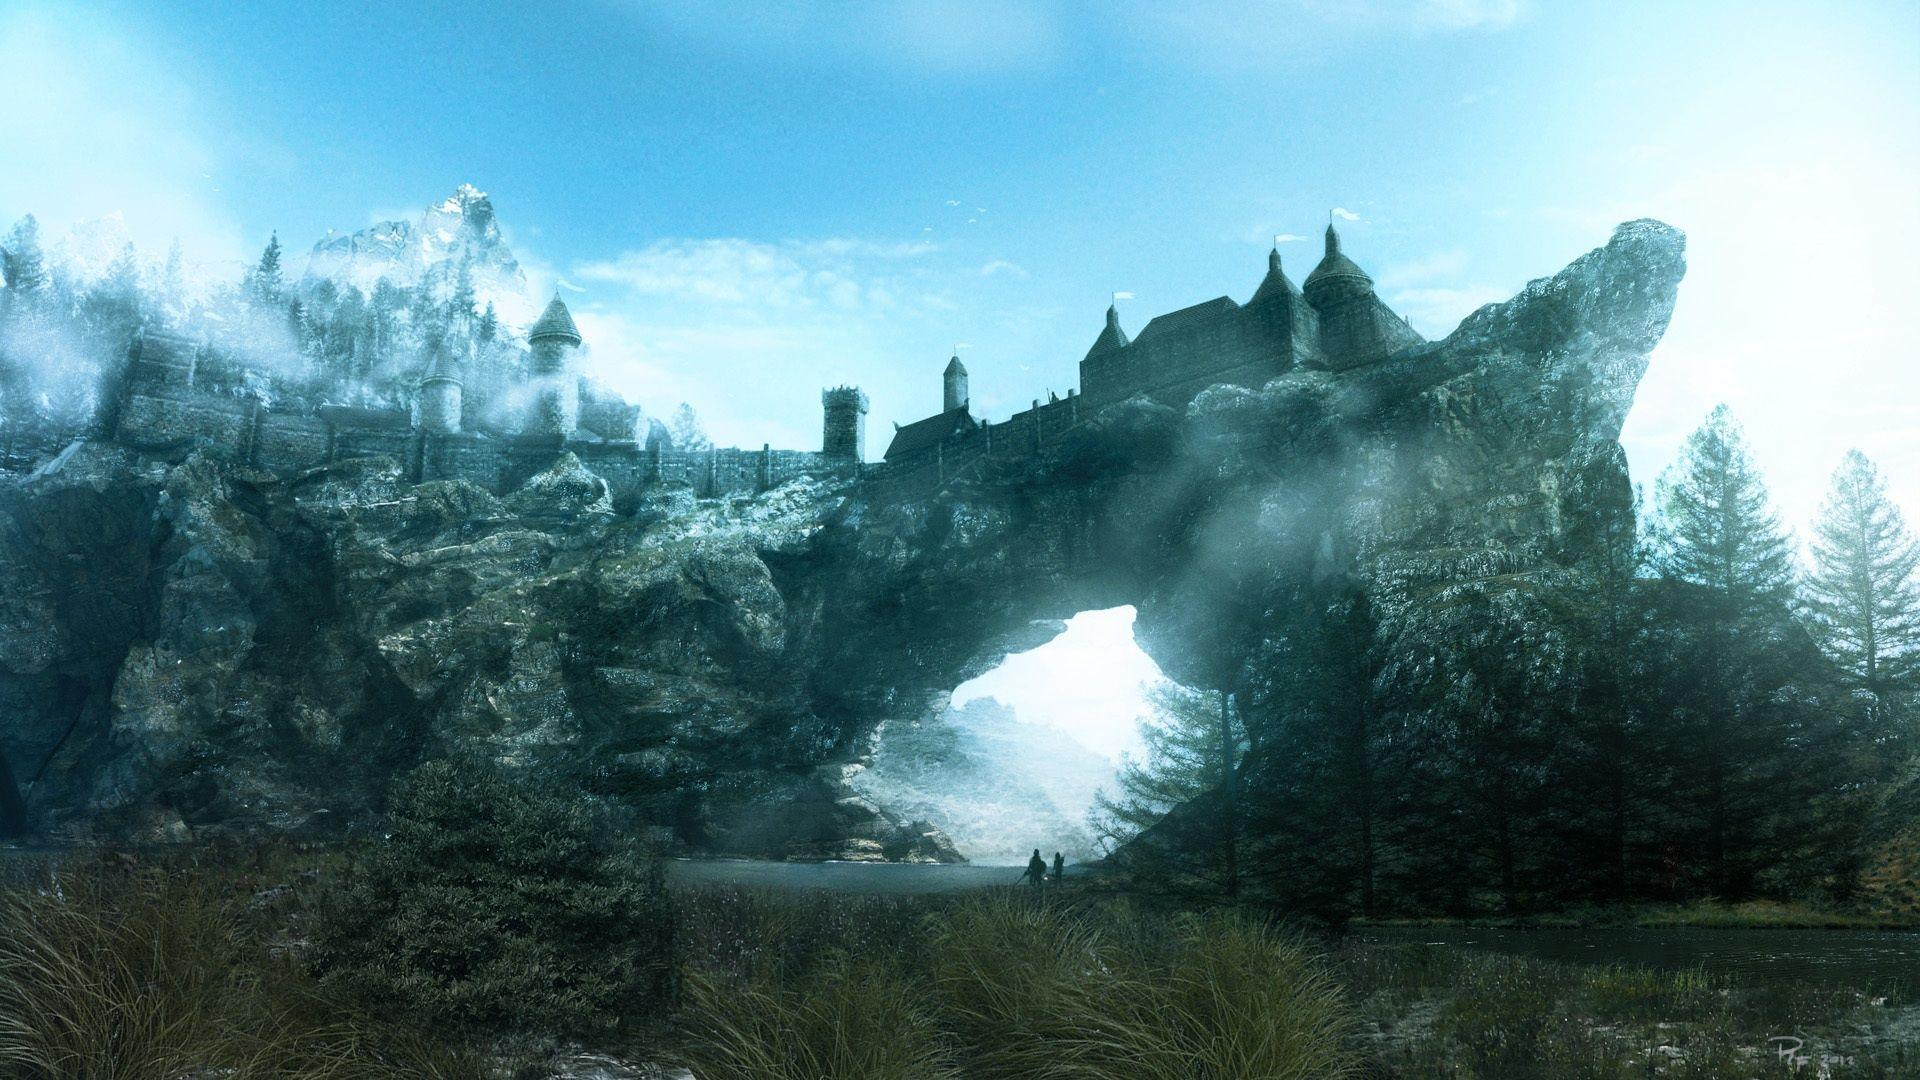 skyrim hd wallpapers 1366x768 - photo #35